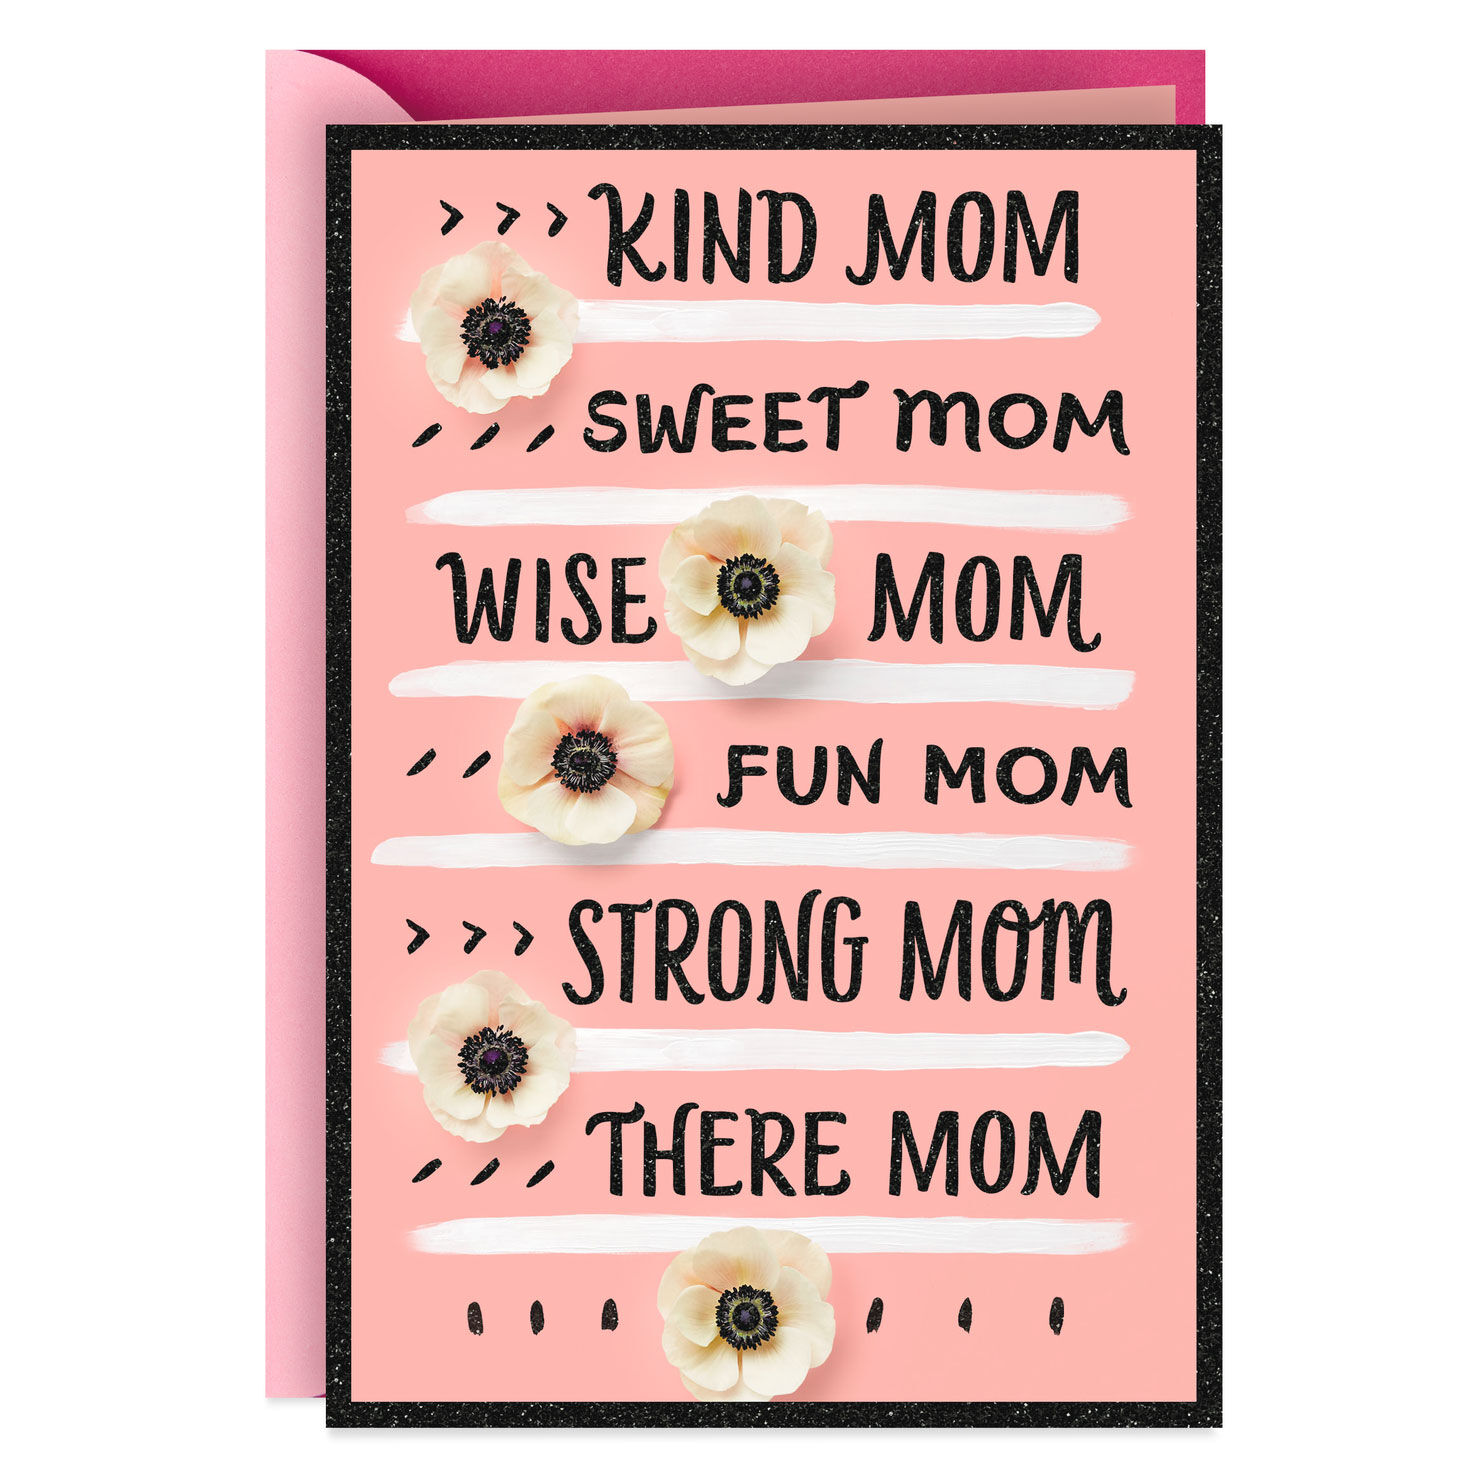 Real my kind mom gallery